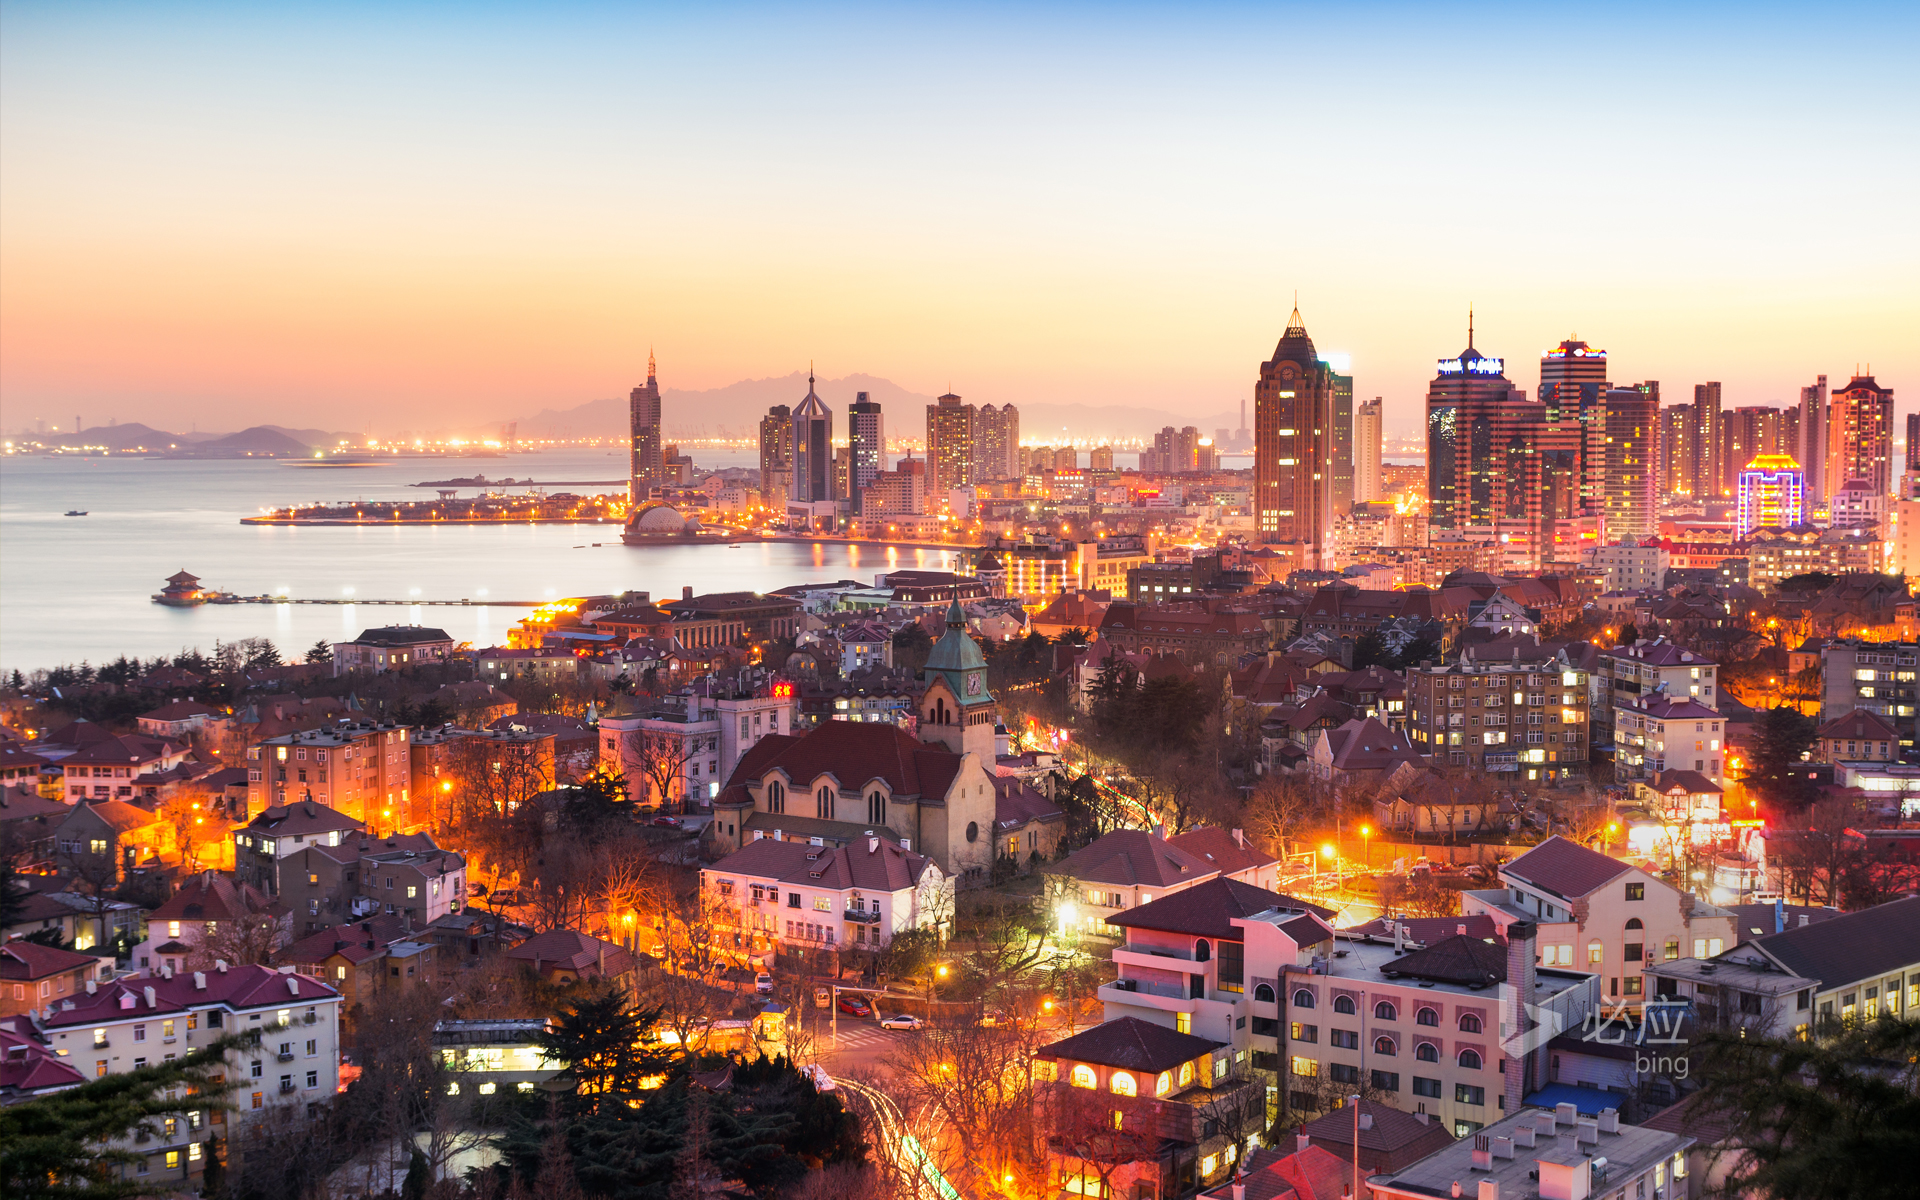 Qingdao night scene